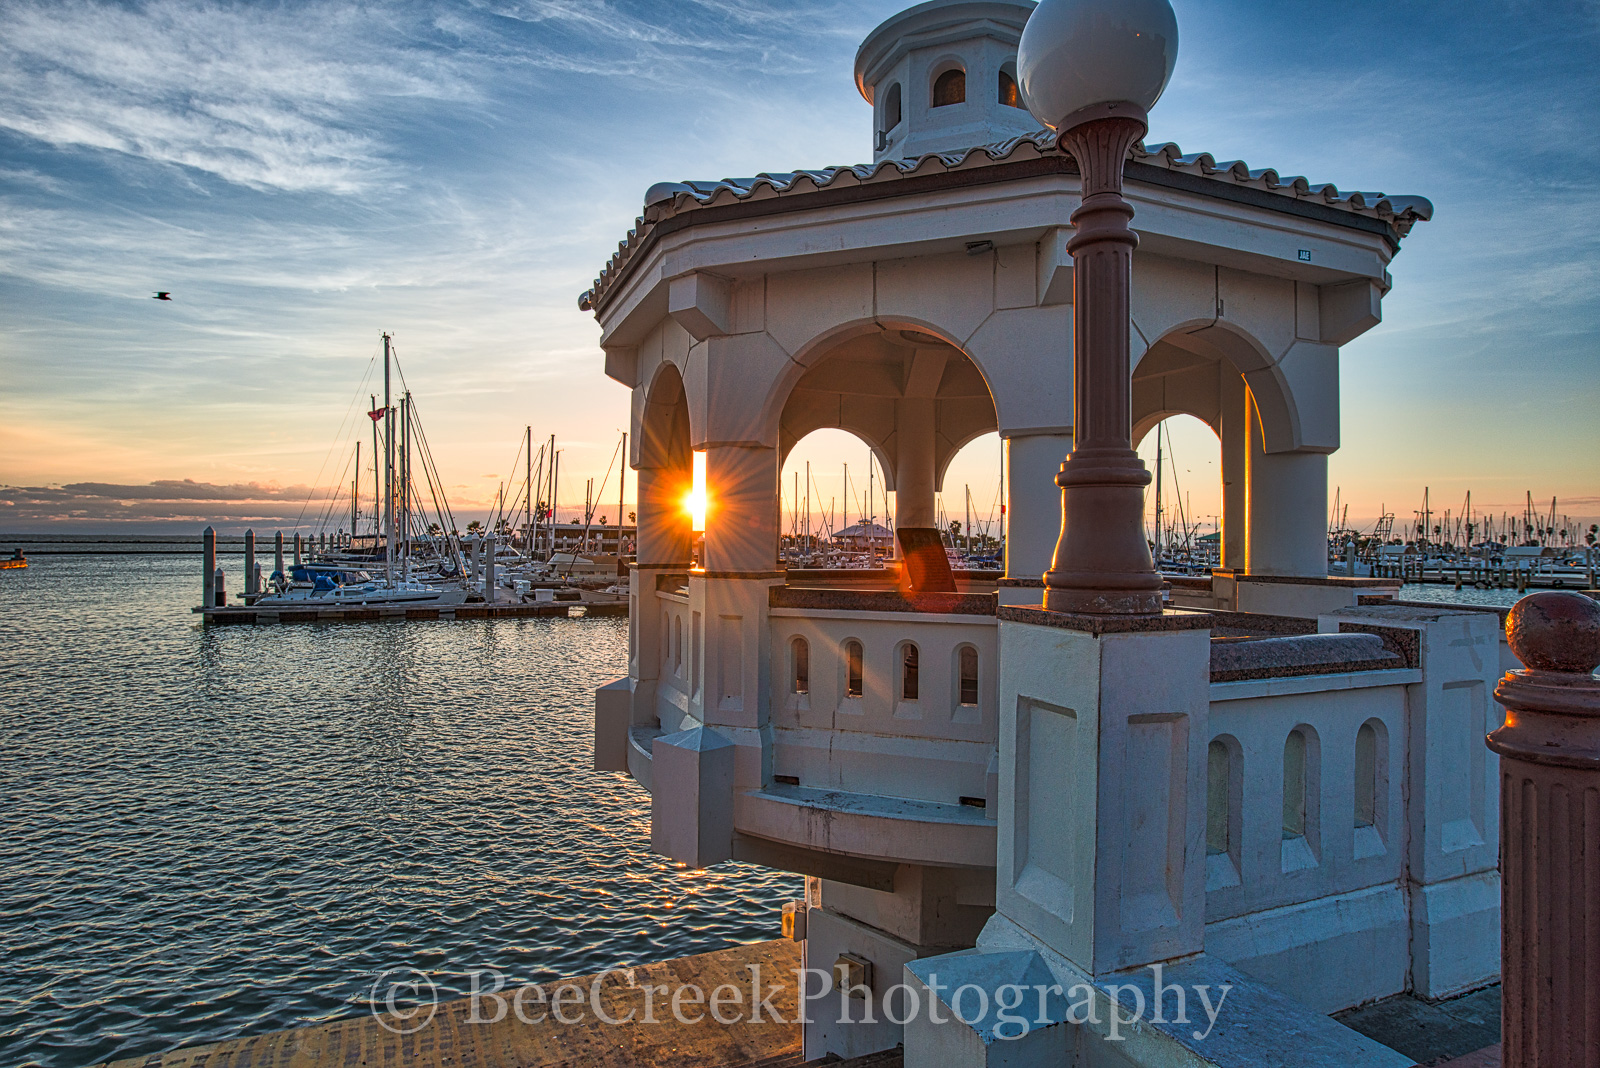 Corpus Christi sunrise, Miradores Del Mar Gazebos, bay, boats, city, cityscape, colorful sky, docks, gazebo, gulf coast, gulf of mexico, ocean, sailboats, seascape, seawall, photo